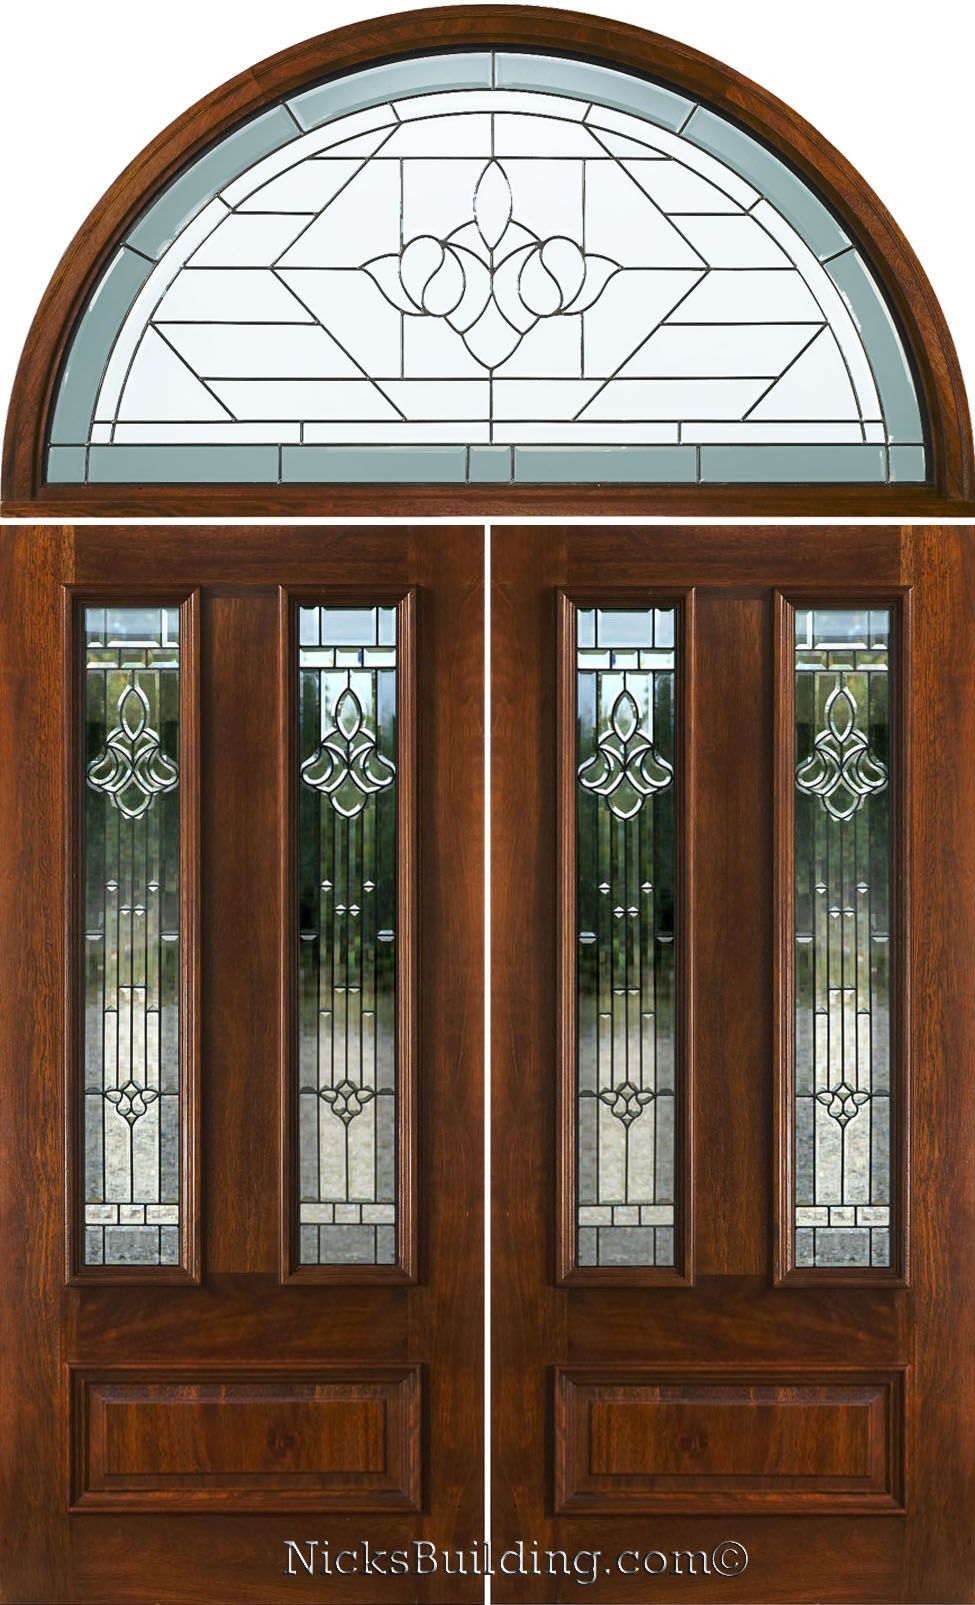 Double Doors With Arched Transoms Half Round Transom Mahogany